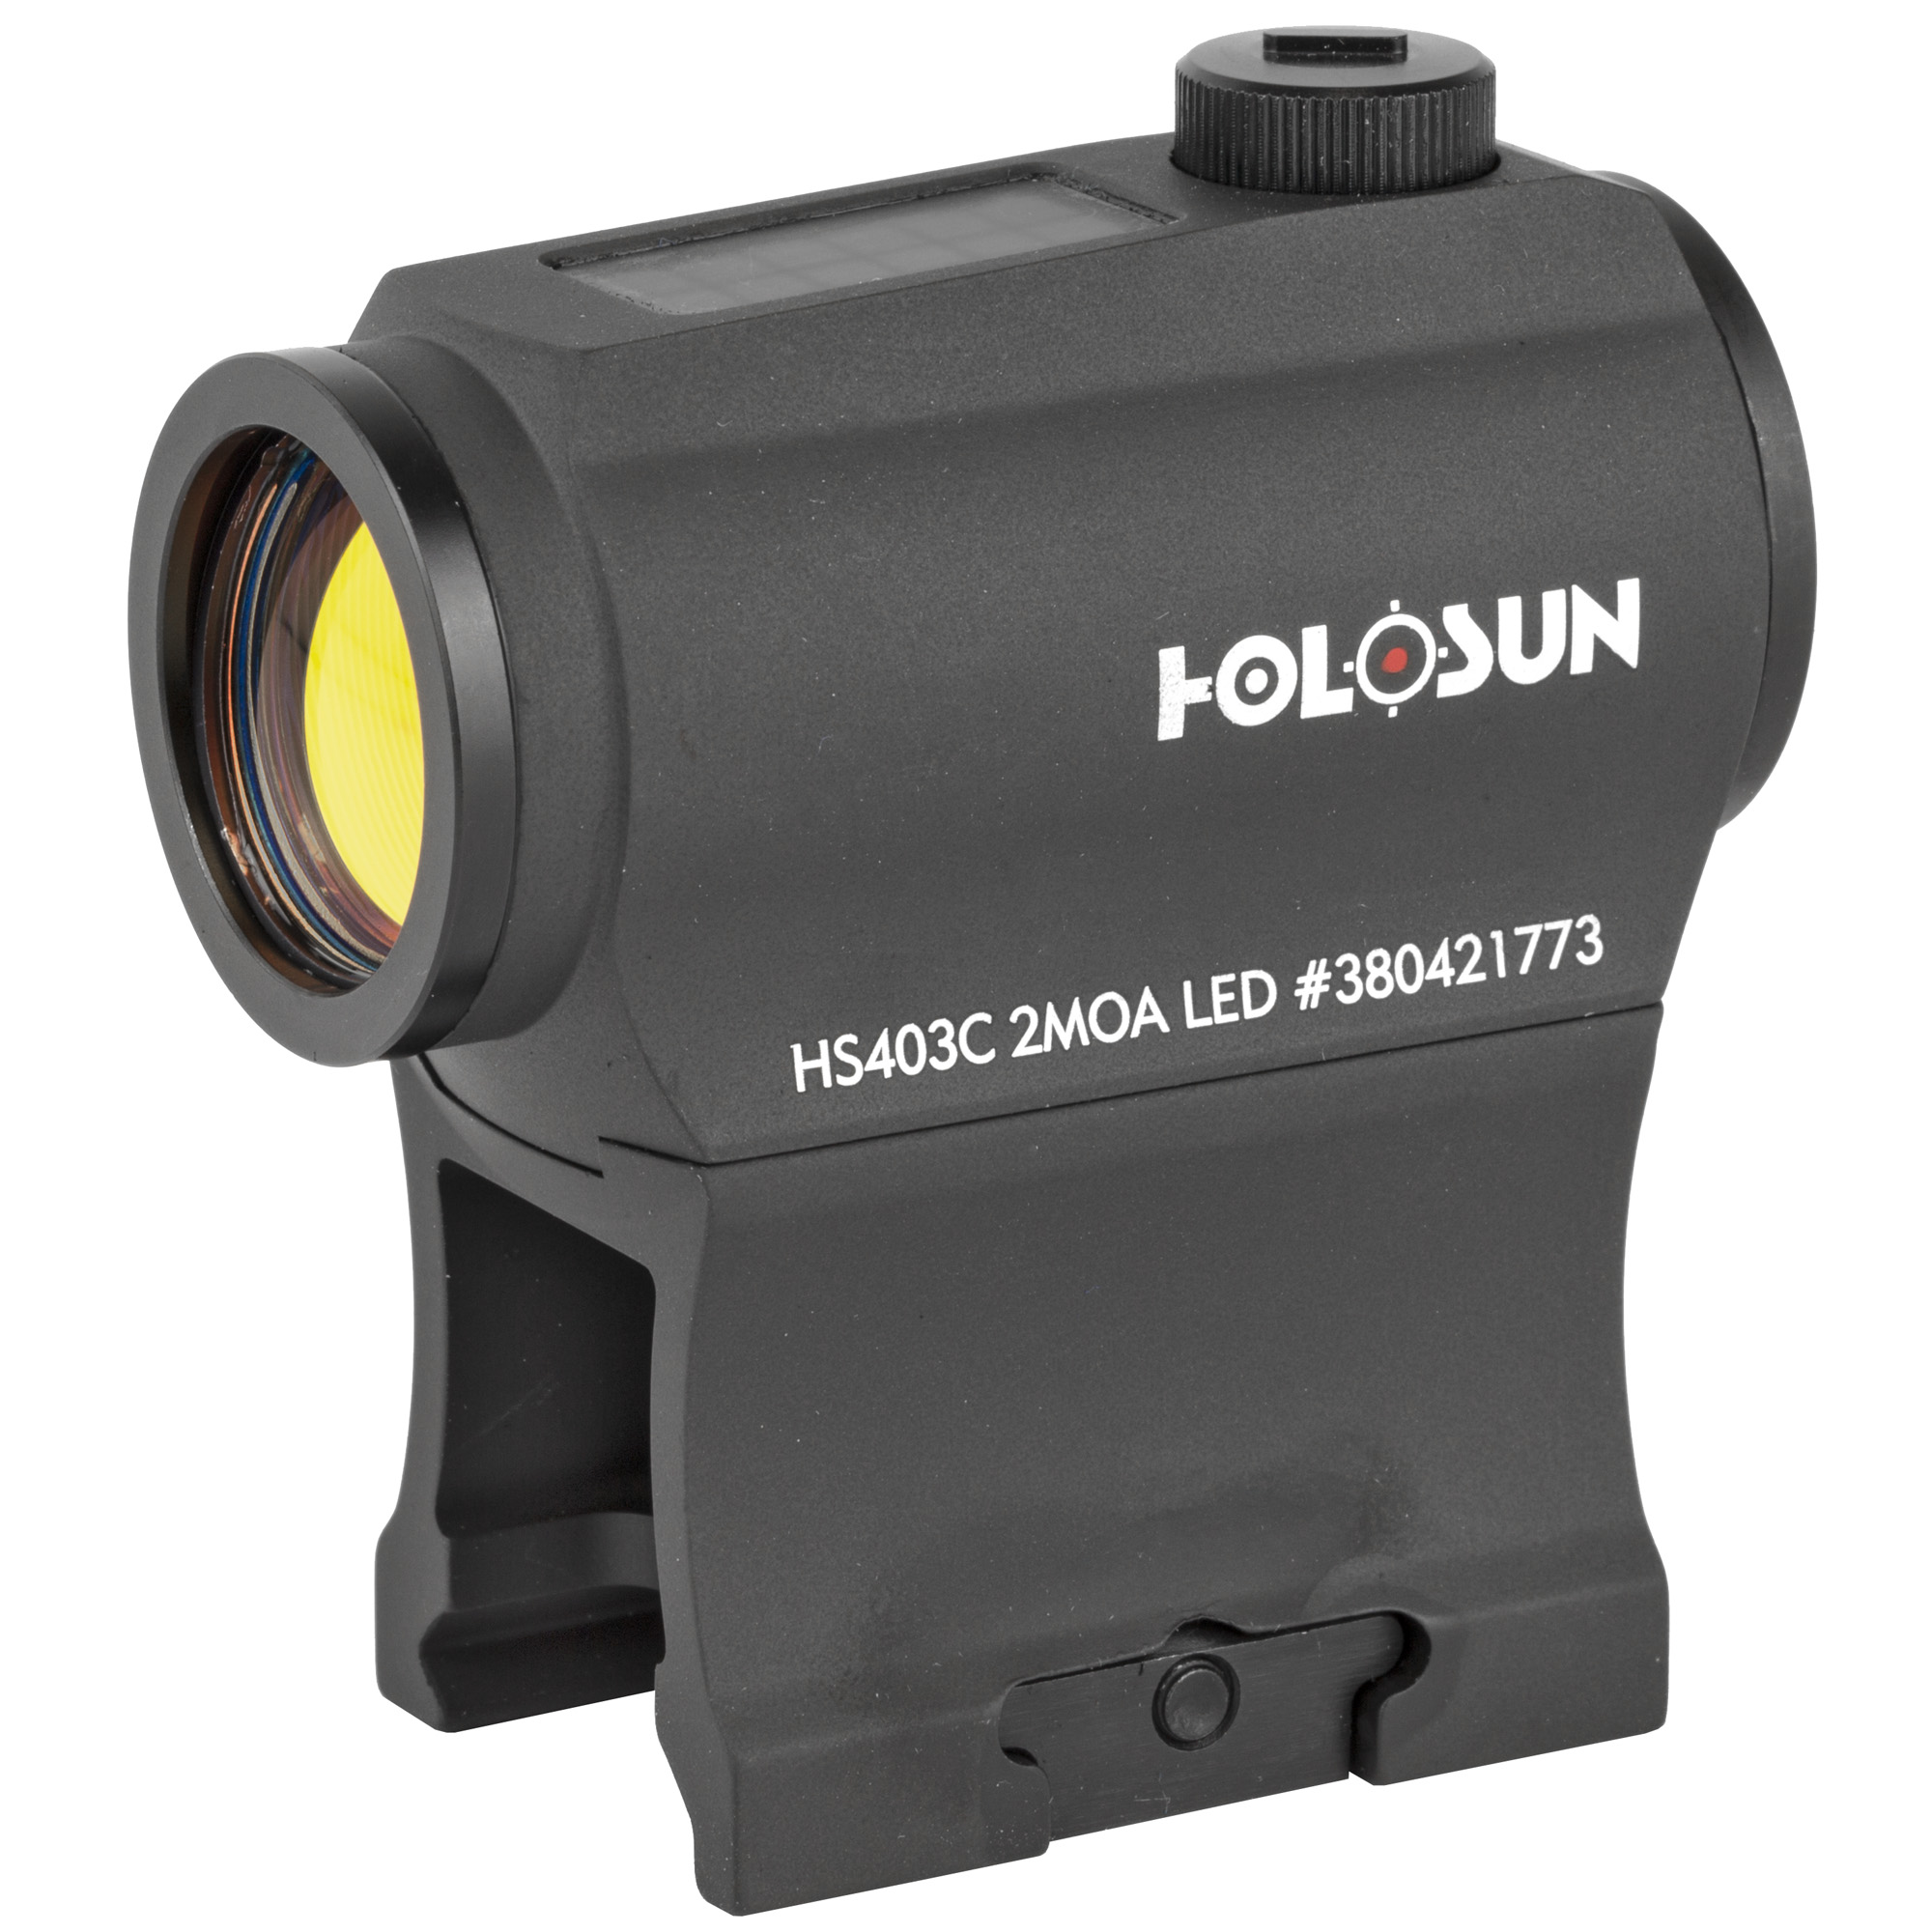 """The HS403C is a solar version of the successful HS403A. Holosun's highly efficient light emitting diodes and solar panels allow Holosun solar optics to run without a battery in many lighting conditions. Additionally"""" the back-up battery lasts up to 5-years. The HS403C is compatible with standard mounts."""